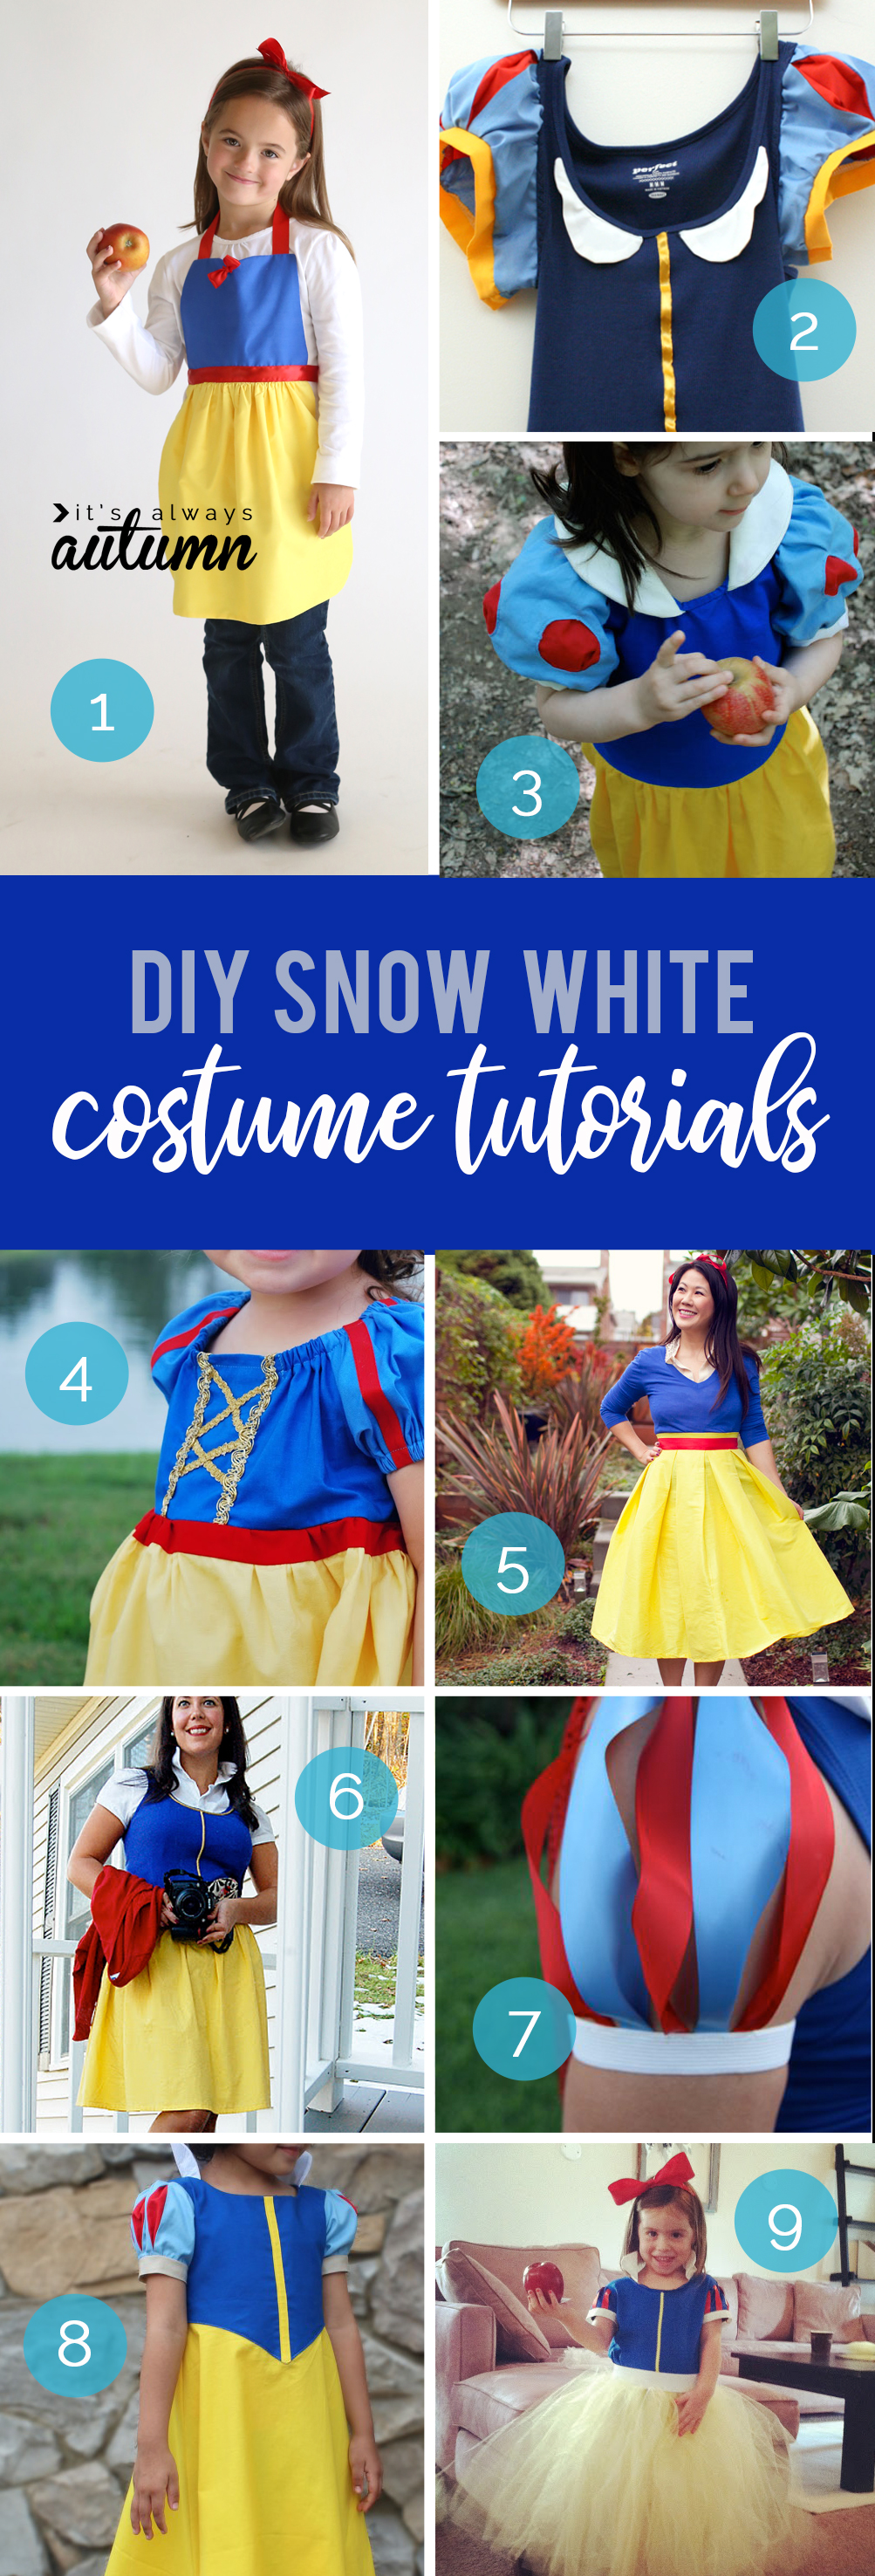 How to make a DIY Snow White costume - all the best tutorials for how to make a homemade Snow White costume.